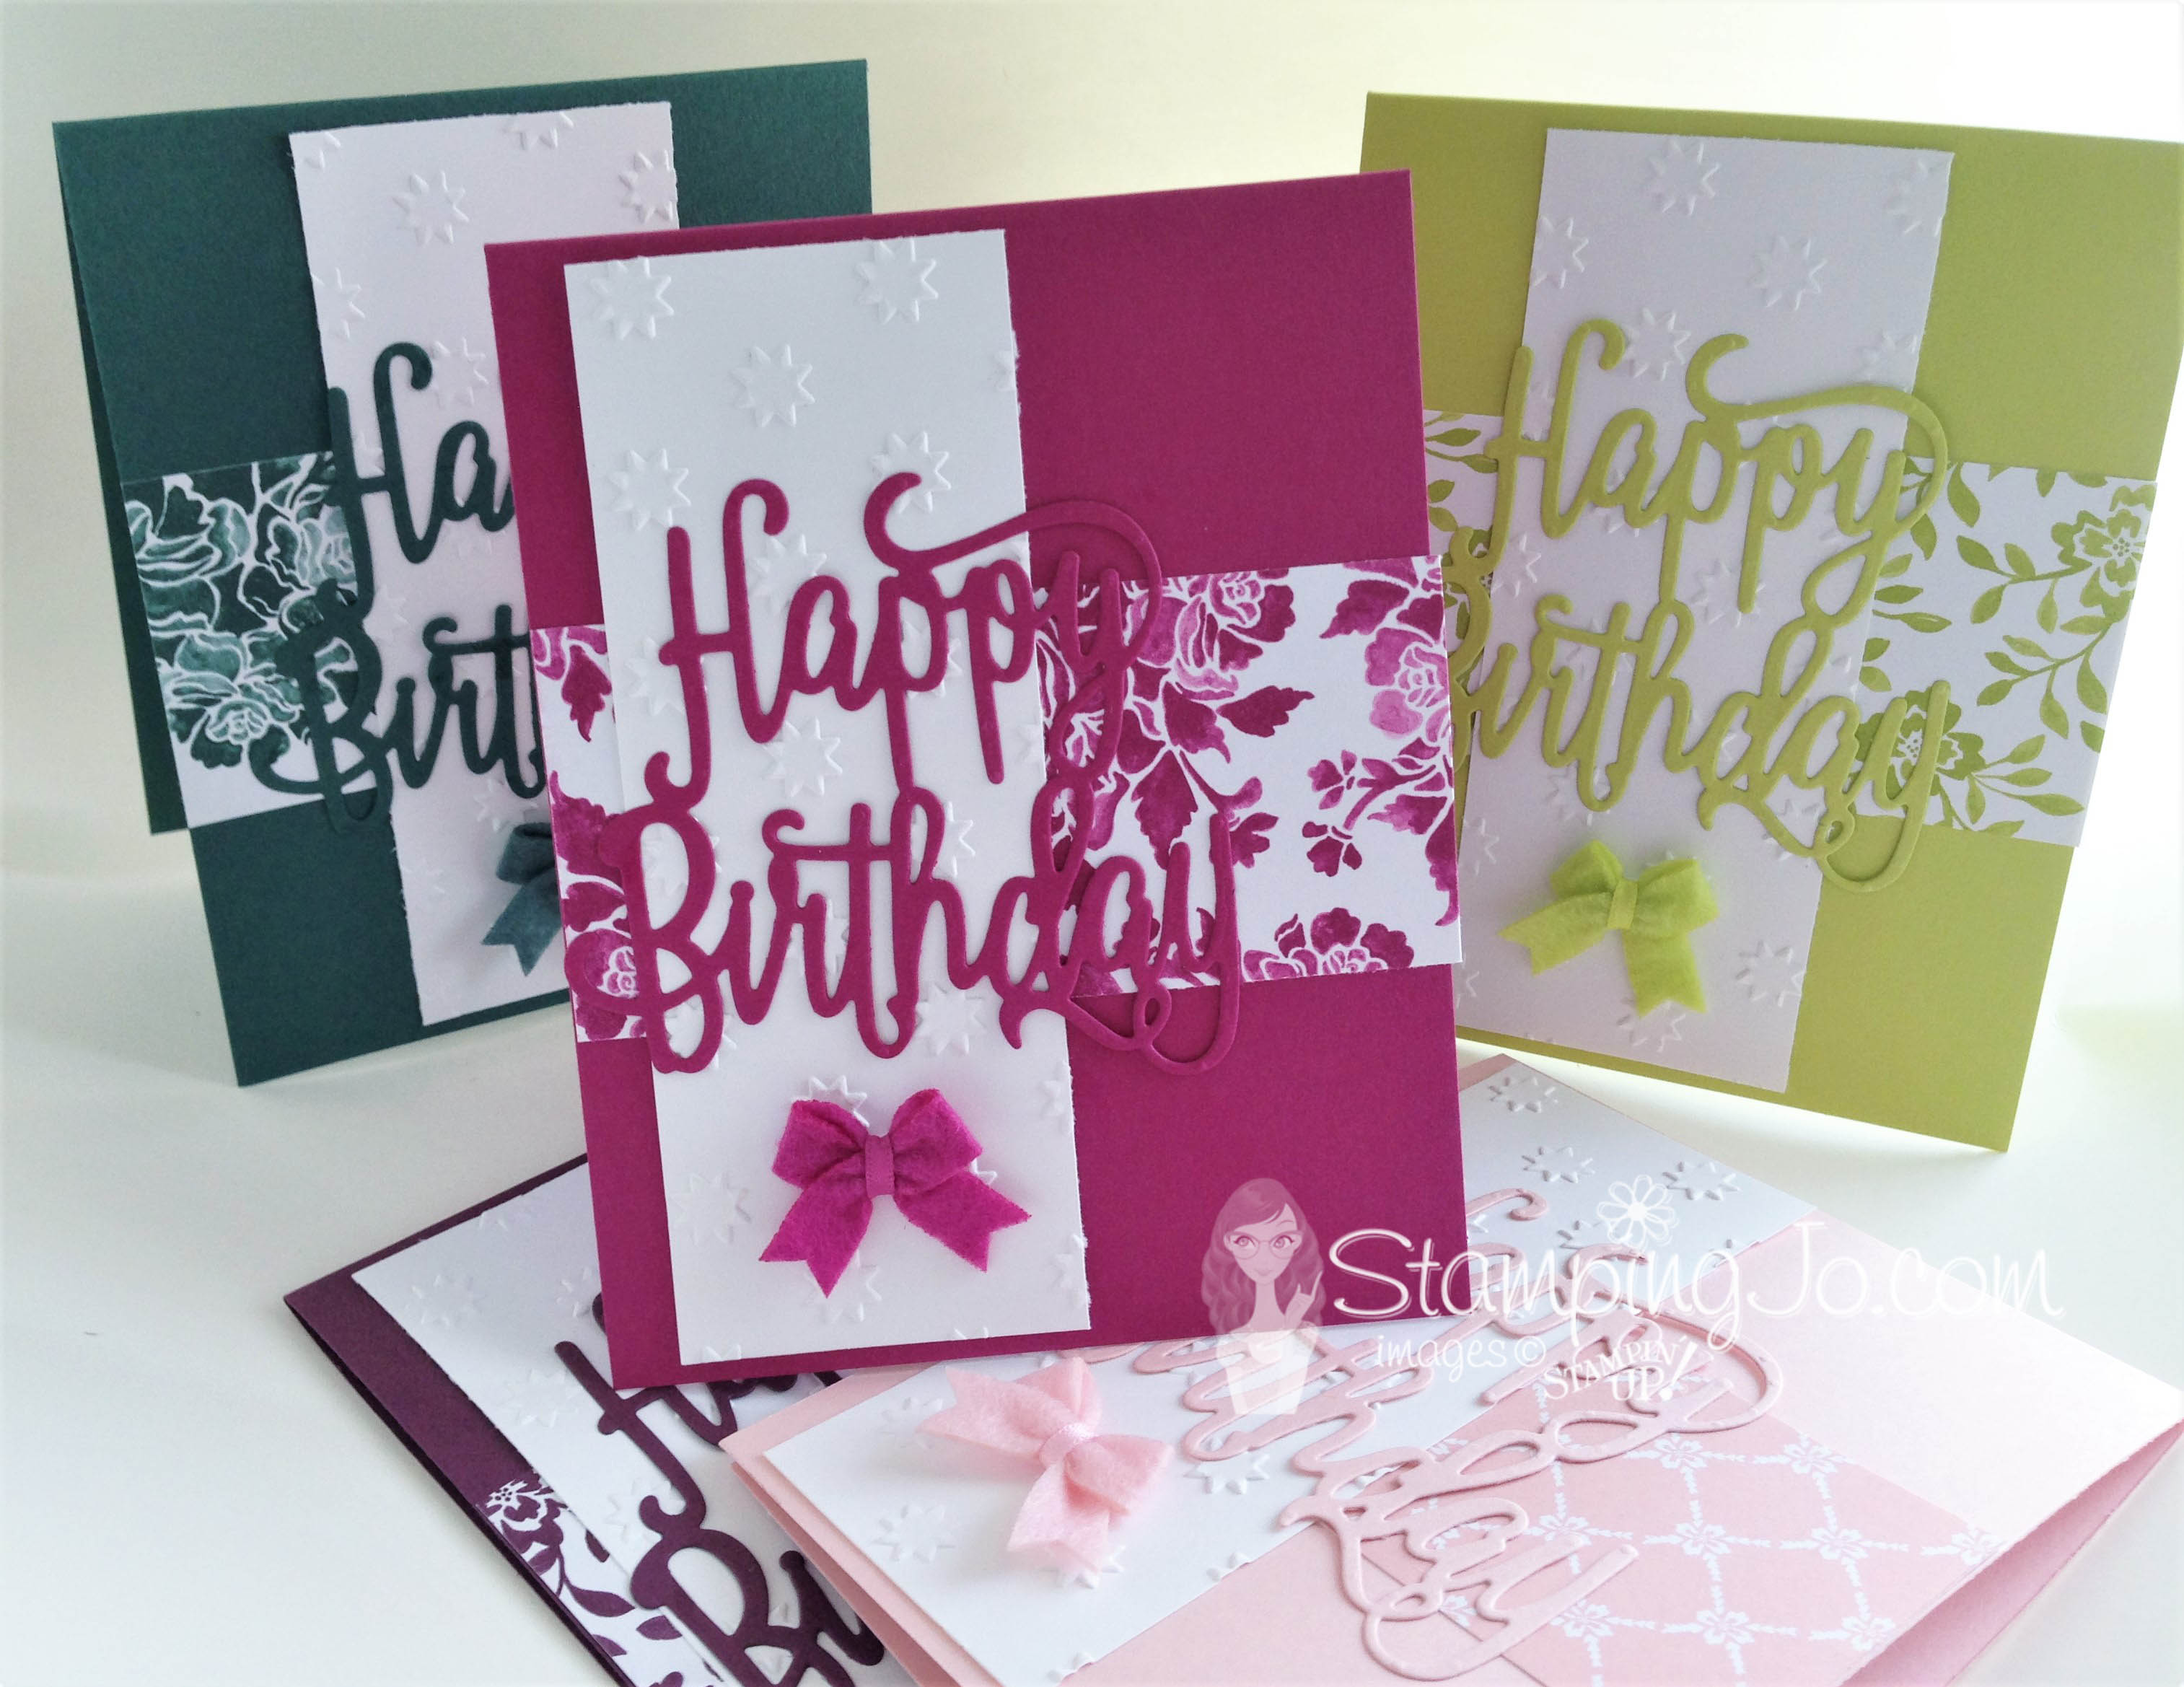 Stampin Up 2017-2019 In Colors, monochromatic cards